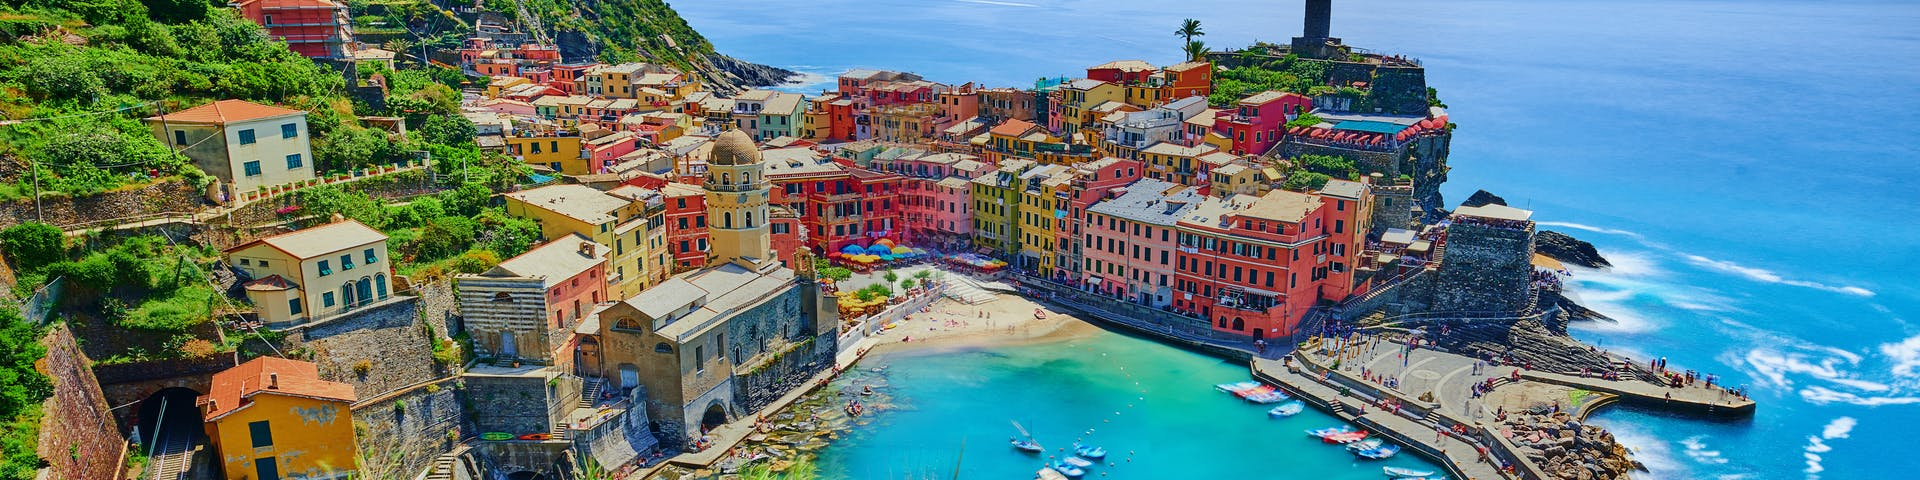 Picturesque view of vernazza